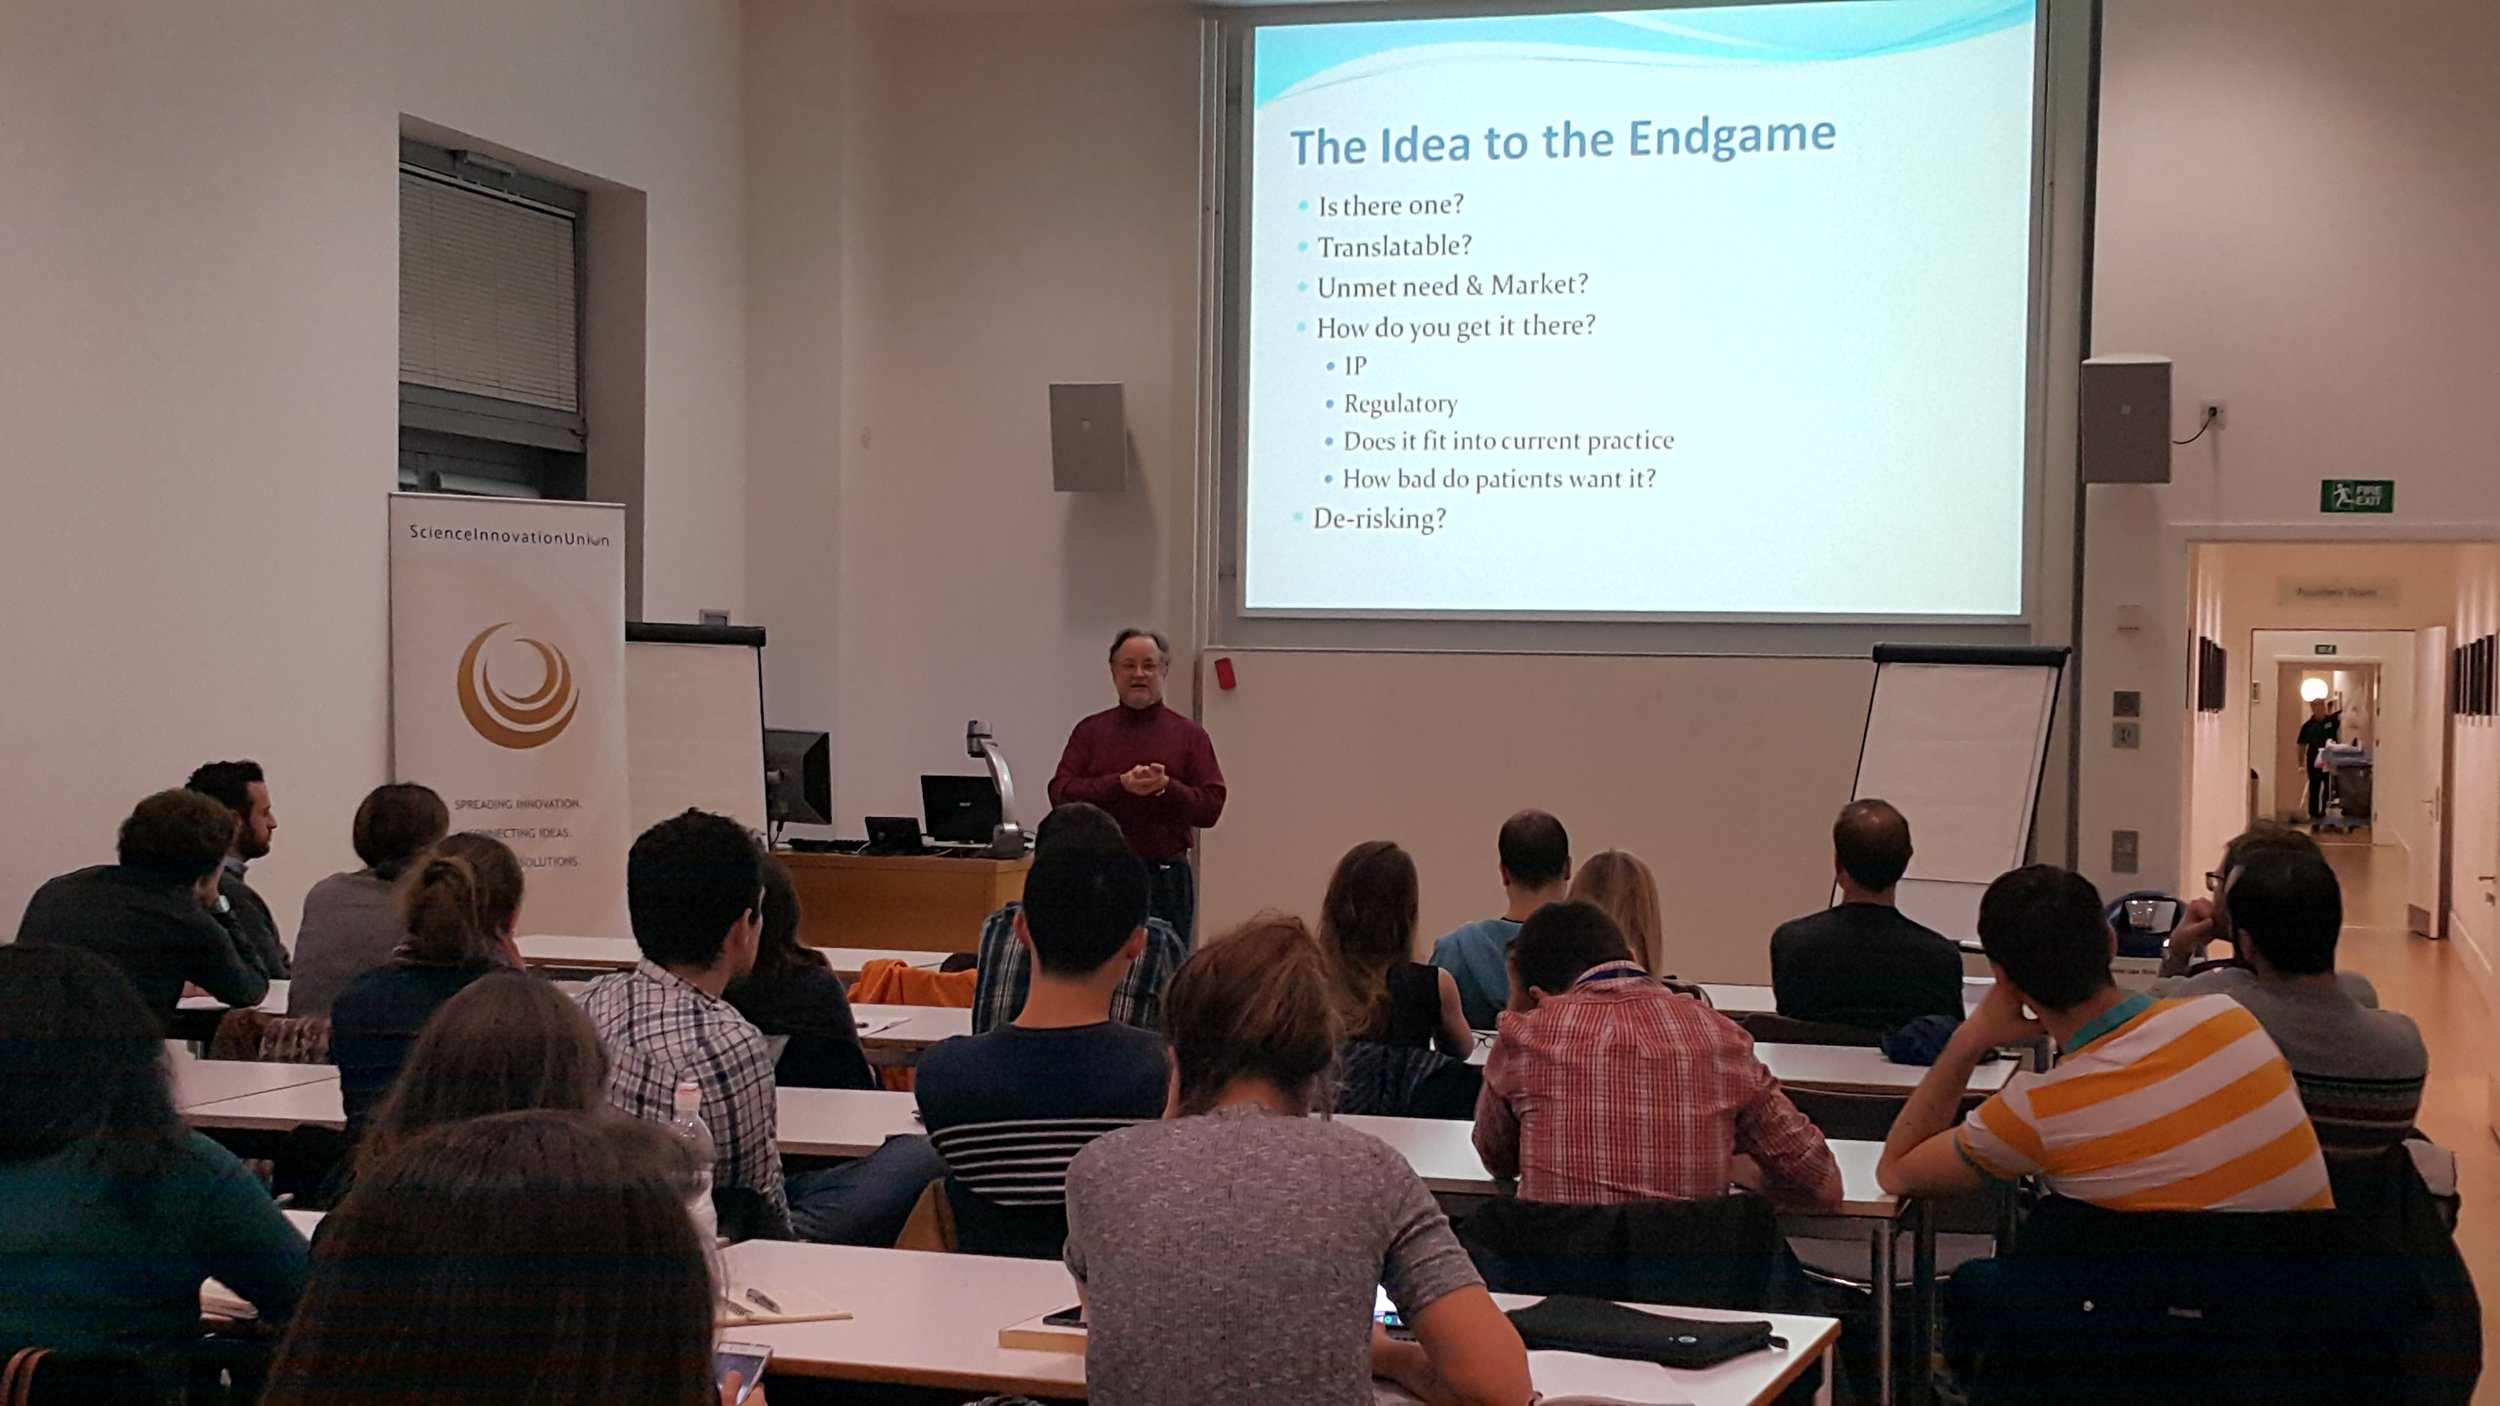 Steven Zimmer's talk at the Sa  ï  d Business School in Oxford on November 15, 2016